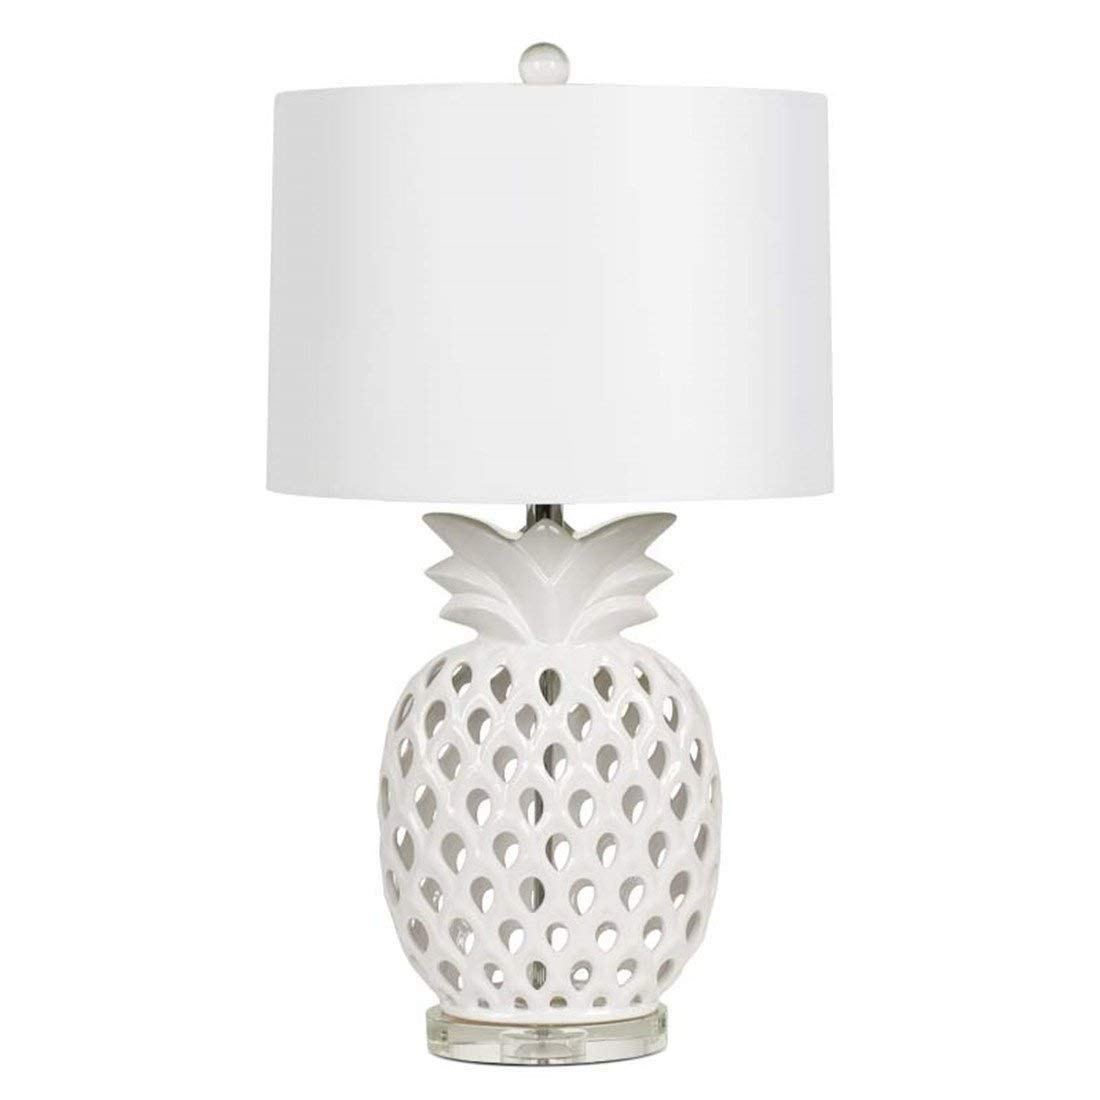 Nordic Simple Modern Creative Art E27 White Pineapple Ceramic Hollow Read Gifts Living Room Study Hotel Café Bedroom Bedside Lamp 16.5 69 Protect Eyes by Gal